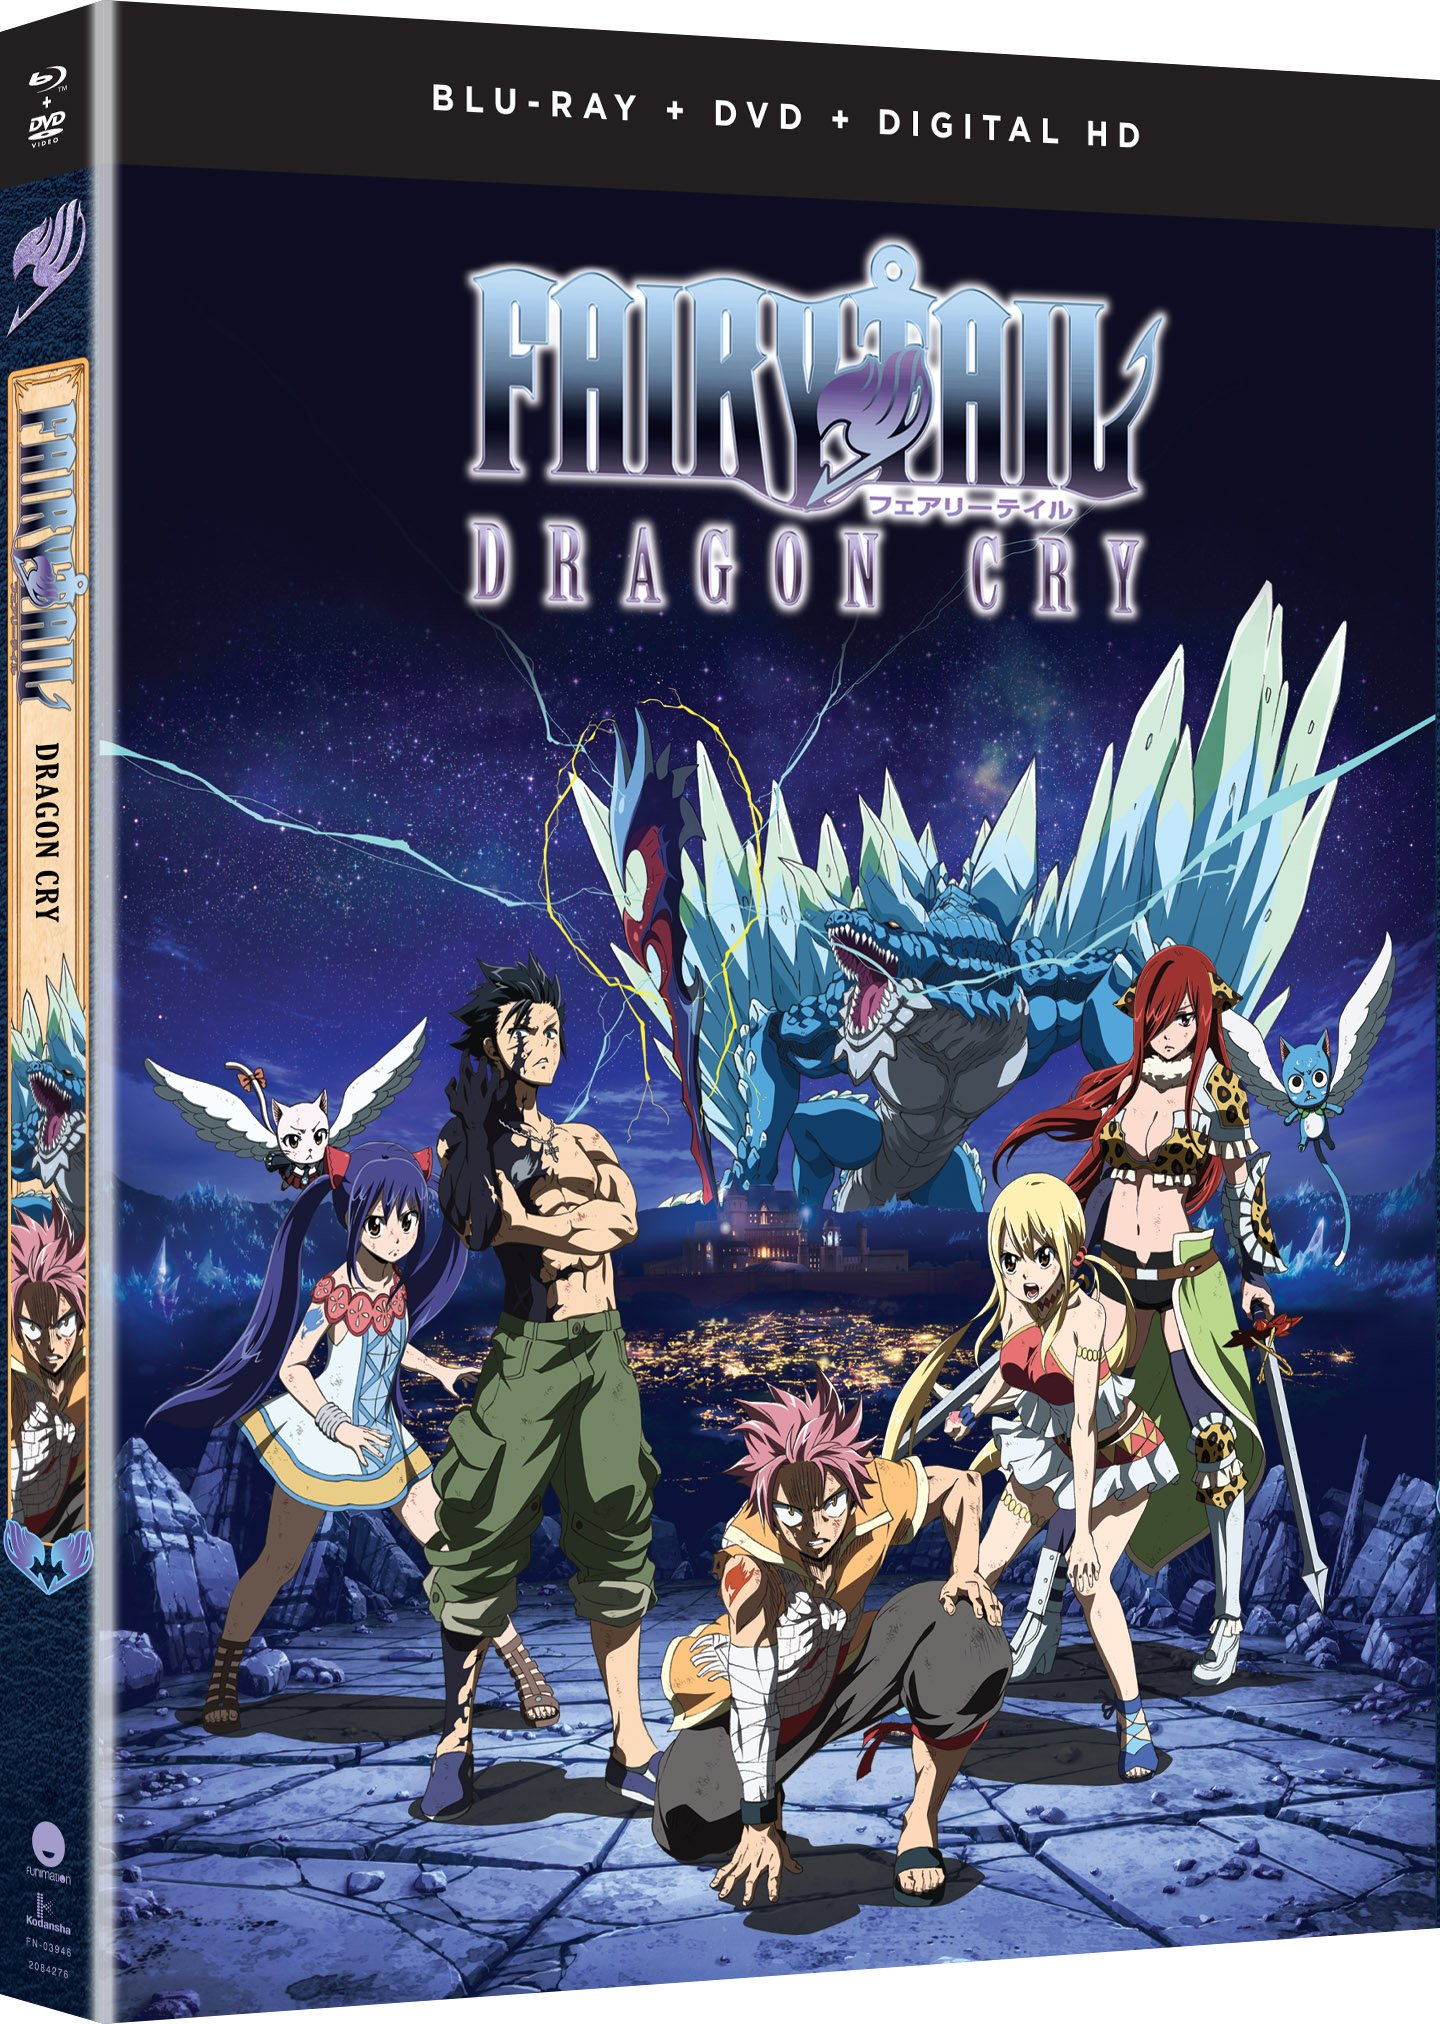 Blu-ray : Fairy Tail: Dragon Cry - Movie (With DVD, Ultraviolet Digital Copy, 2 Pack, 2PC)